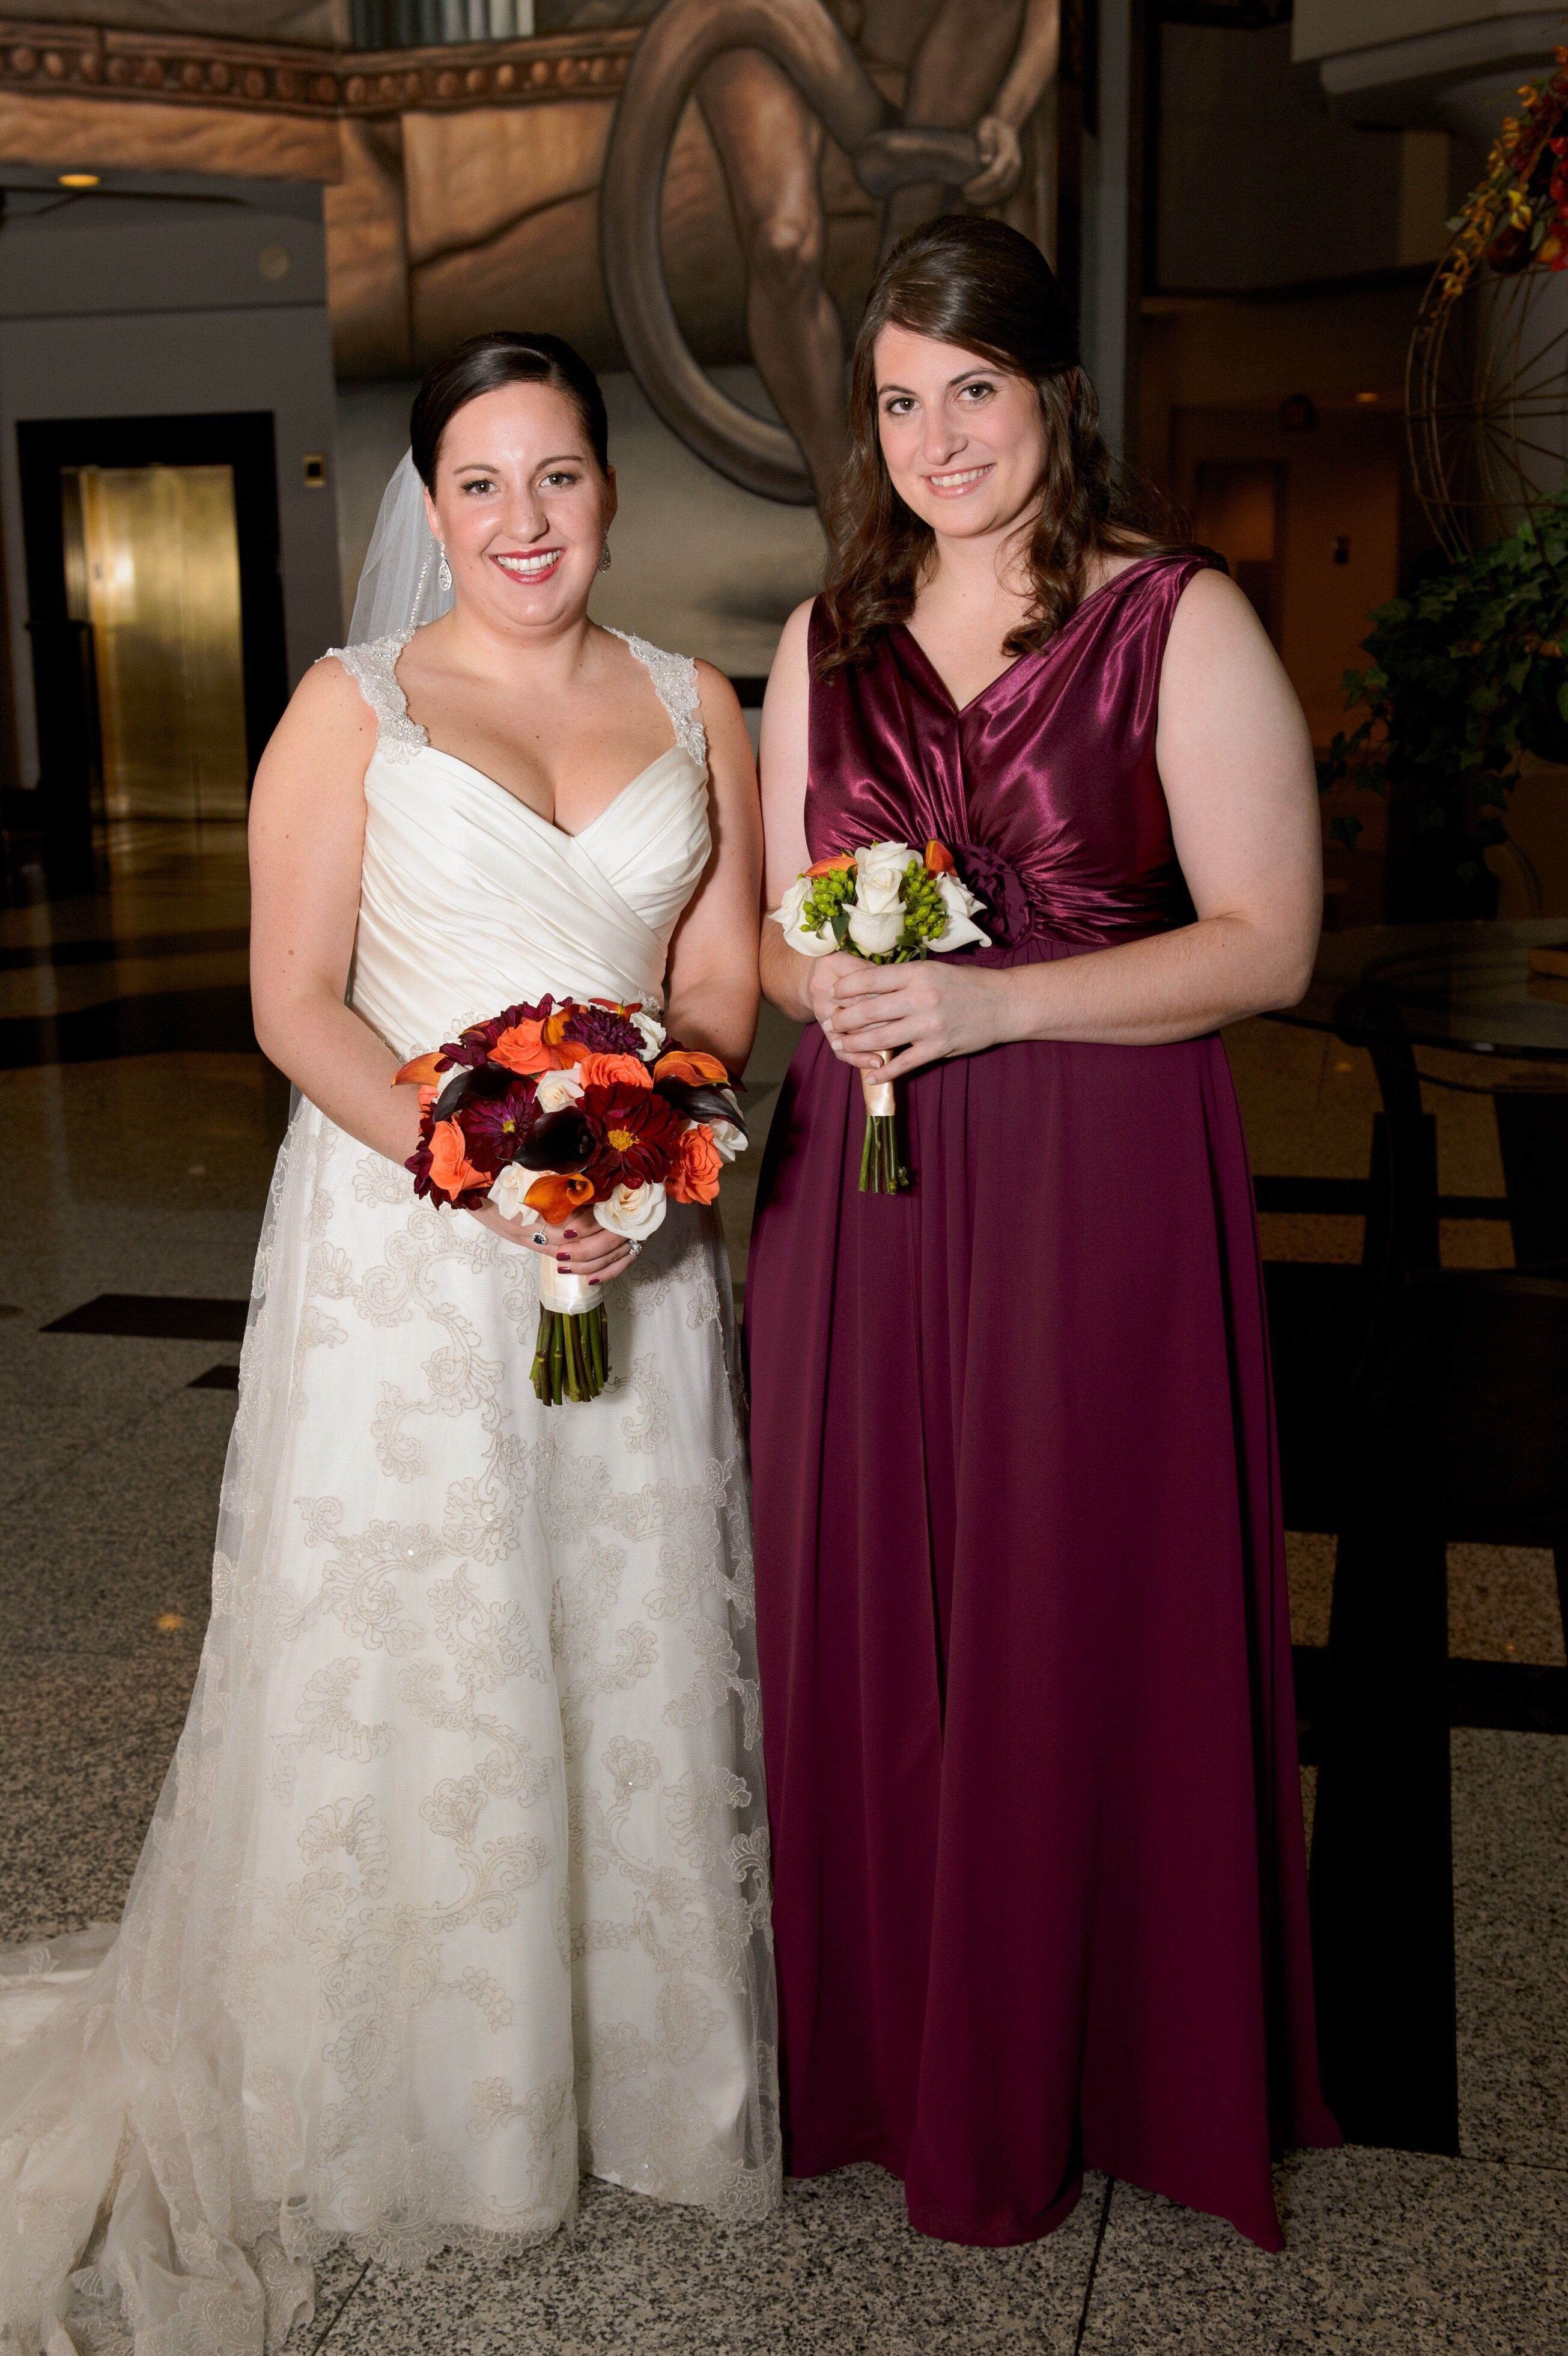 Show me your bordeaux burgundy and wine colored bridesmaid dresses